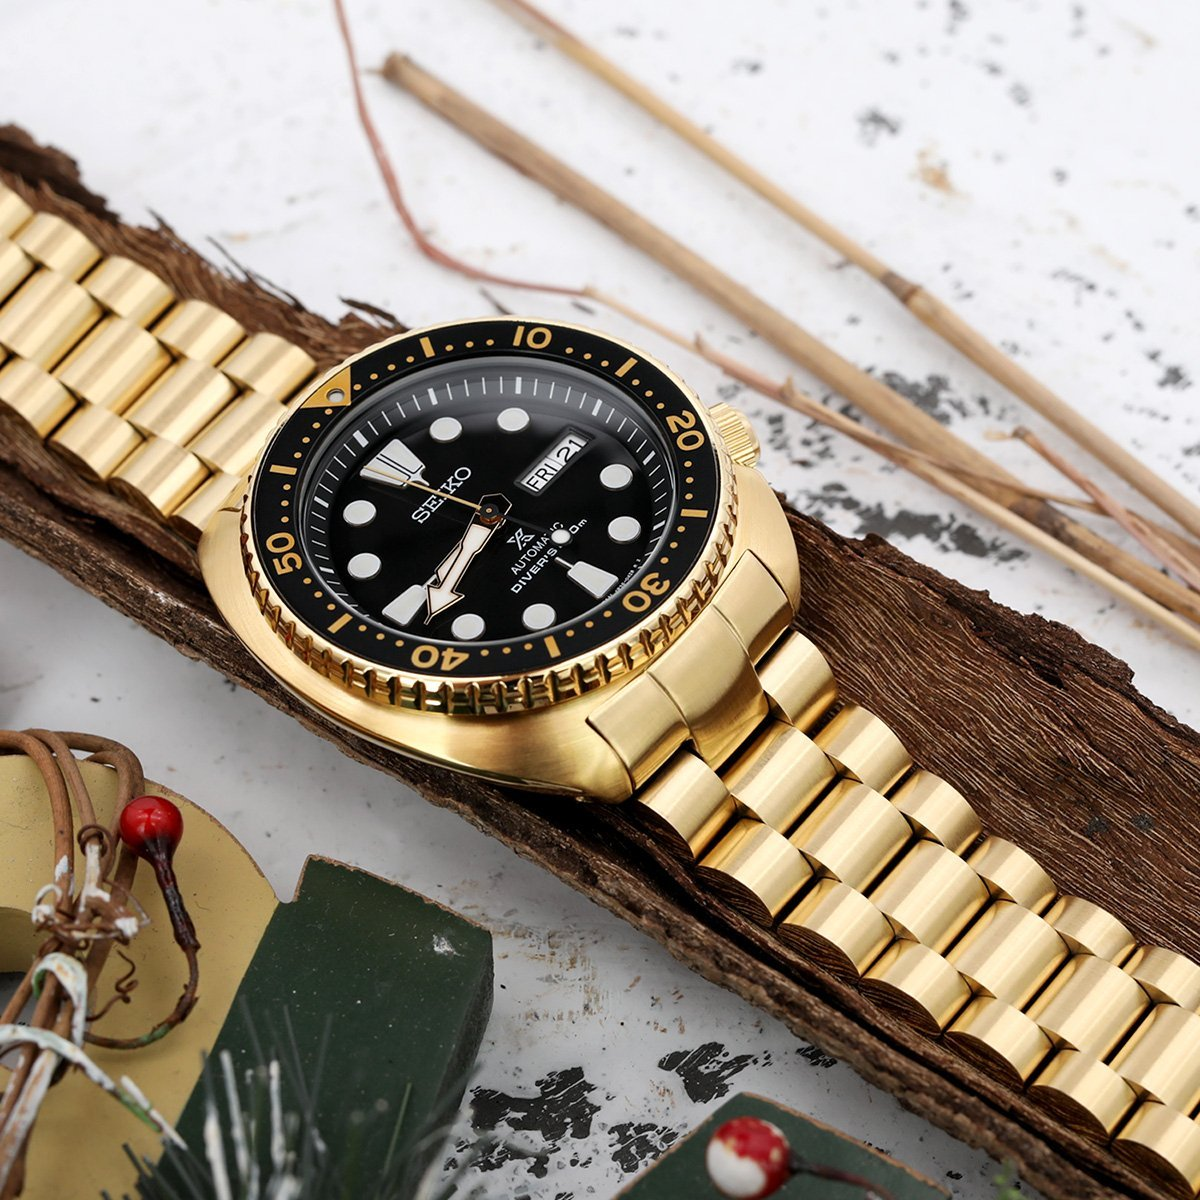 22mm Endmill 316L Stainless Steel Watch Bracelet for Seiko New Turtles SRPC44 SUB Clasp full IP Gold Strapcode Watch Bands